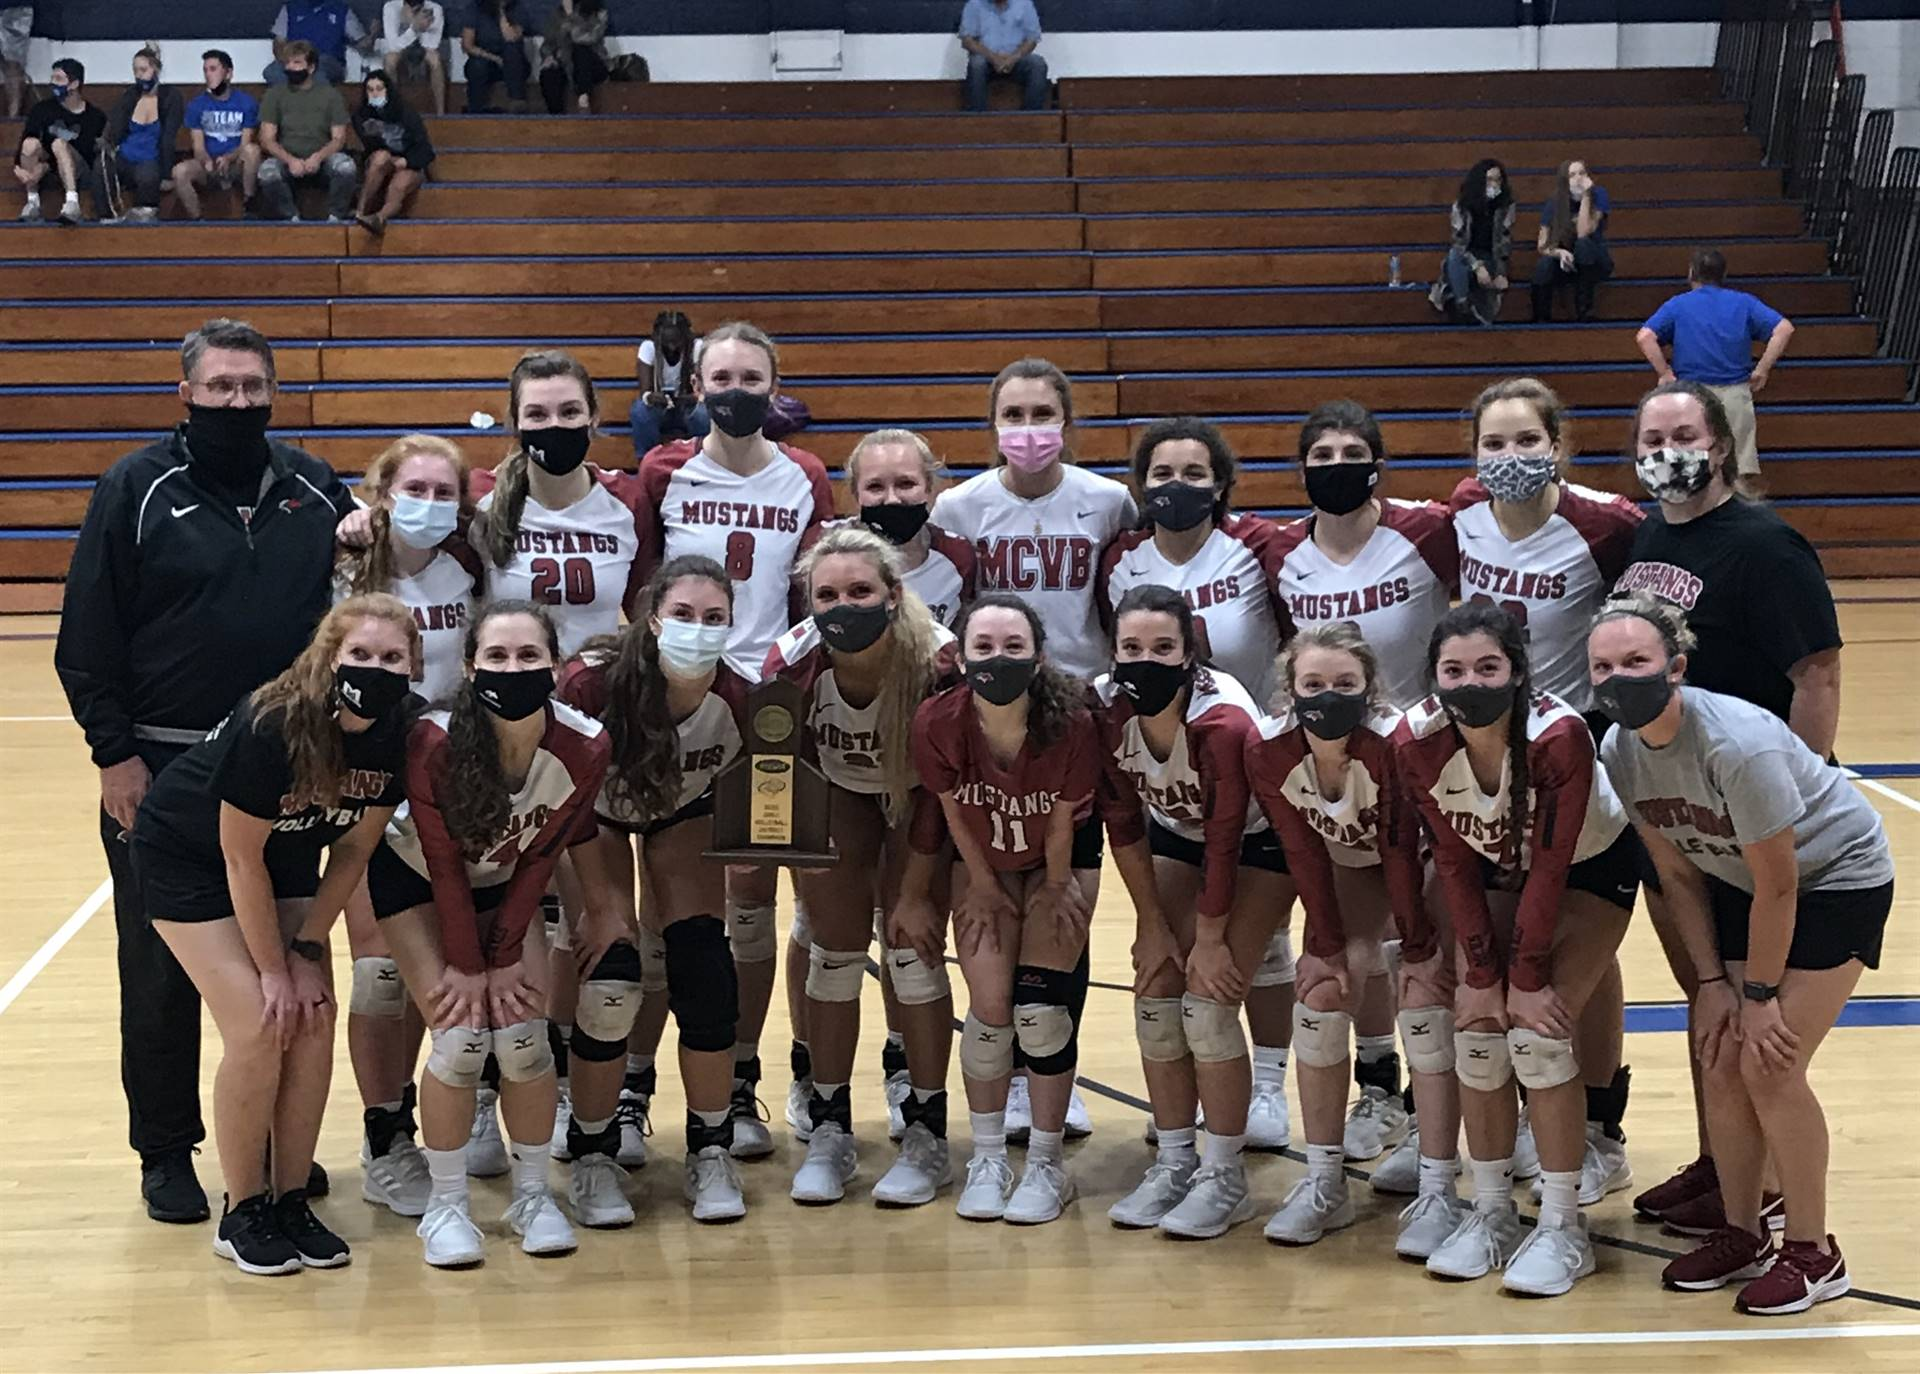 Mustangs Volleyball - 2020 District Champions